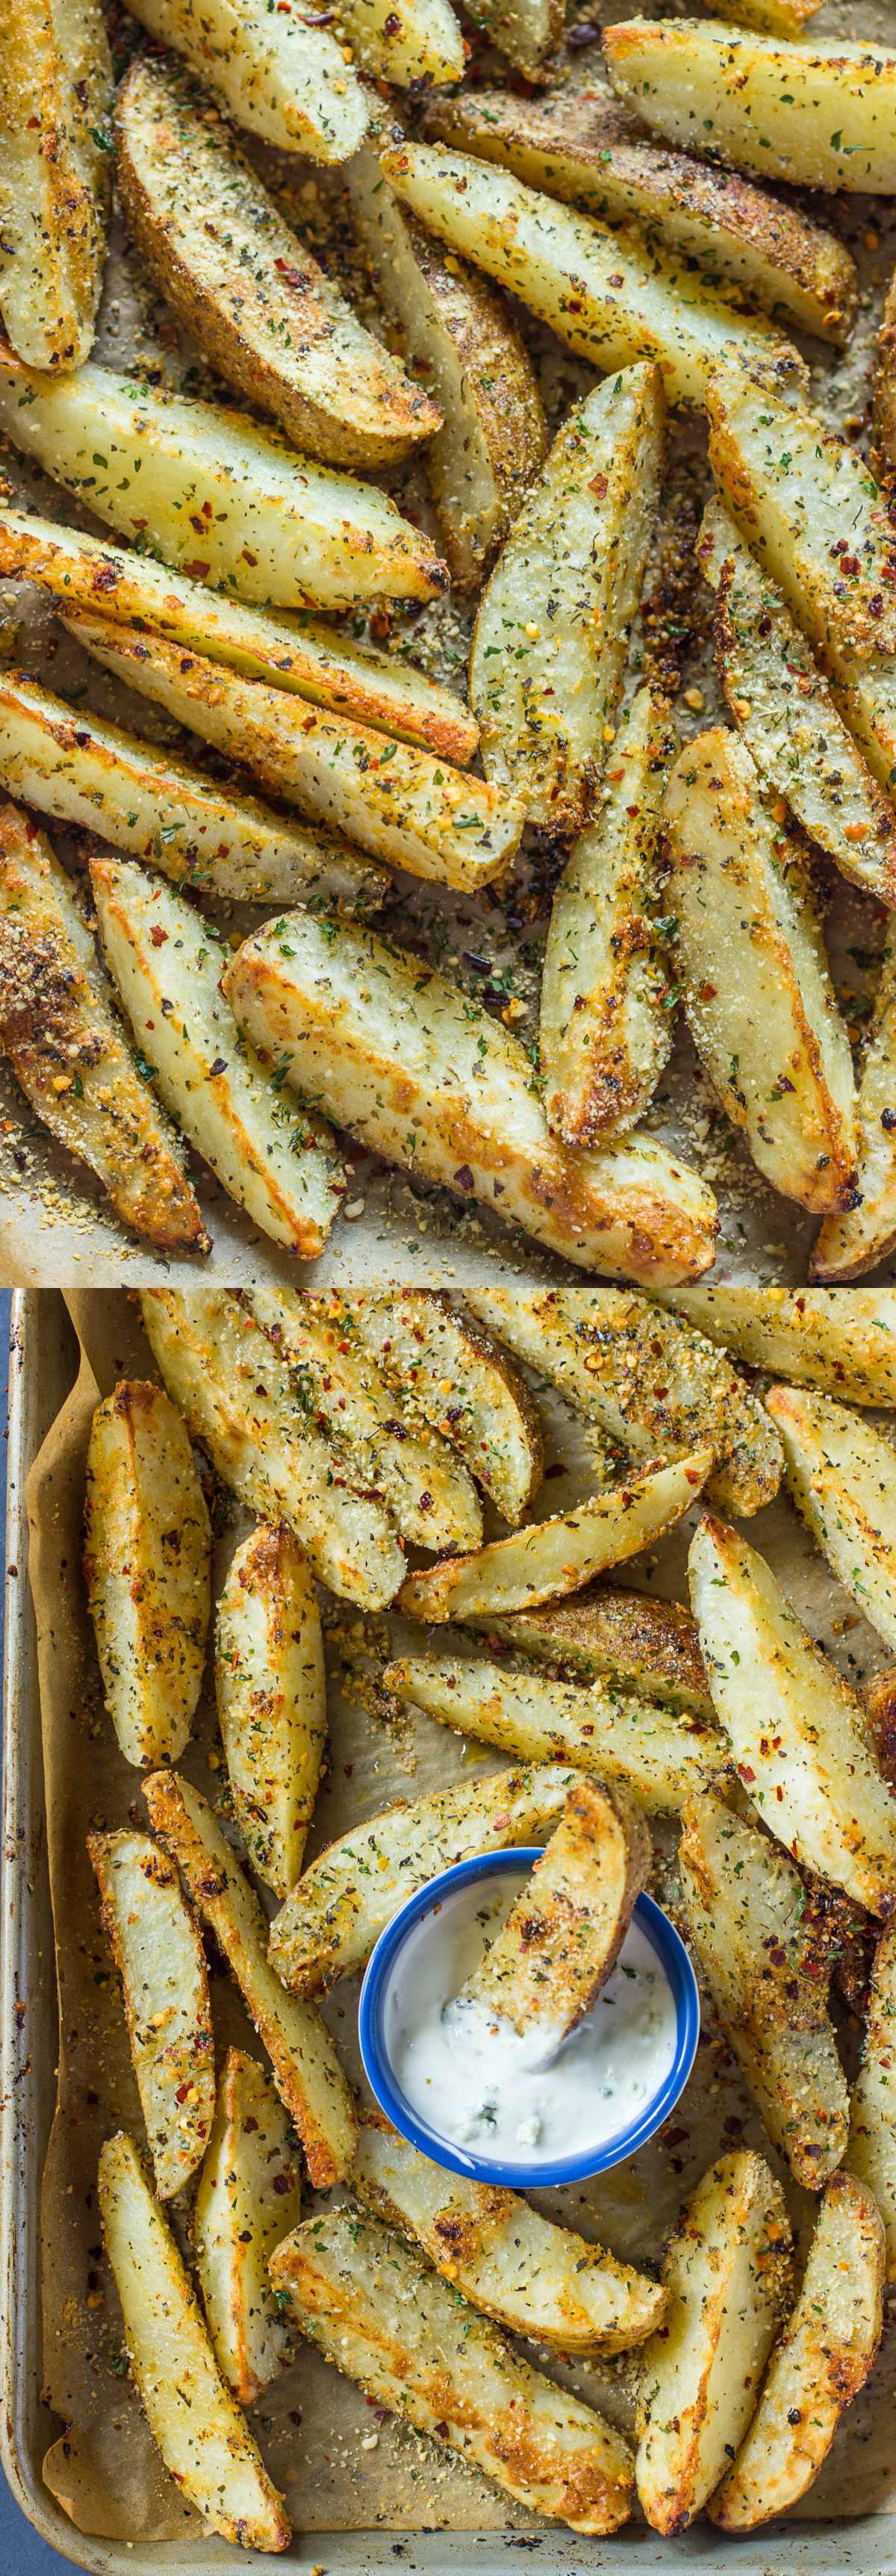 Crispy Baked Garlic Parmesan Potato Wedges